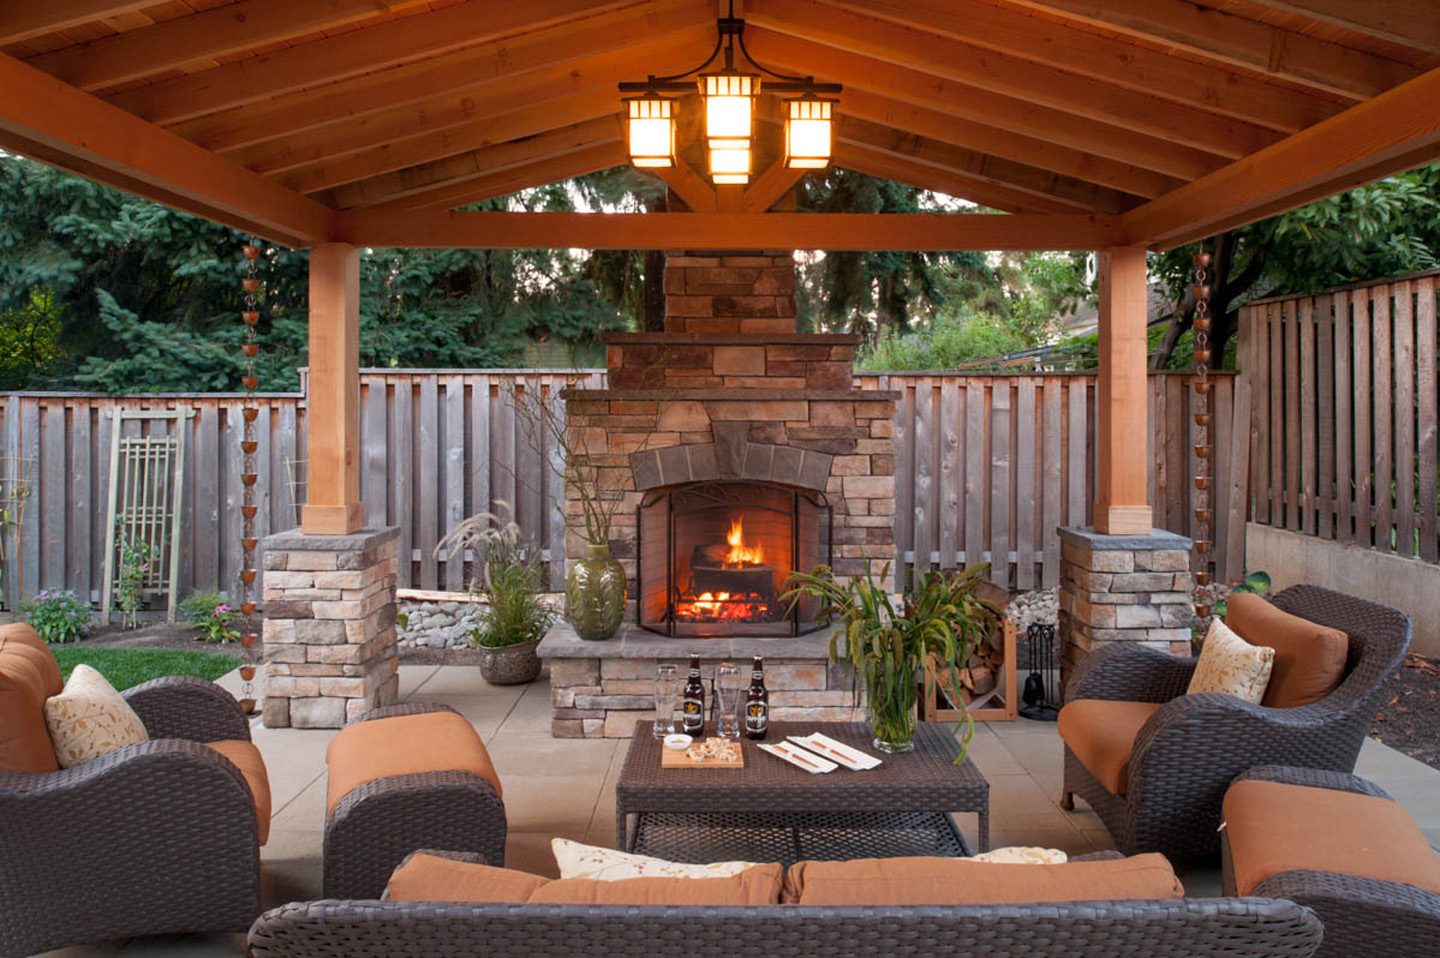 20 gazebos in outdoor living spaces paradise restored - Outdoor living spaces with fireplace ...